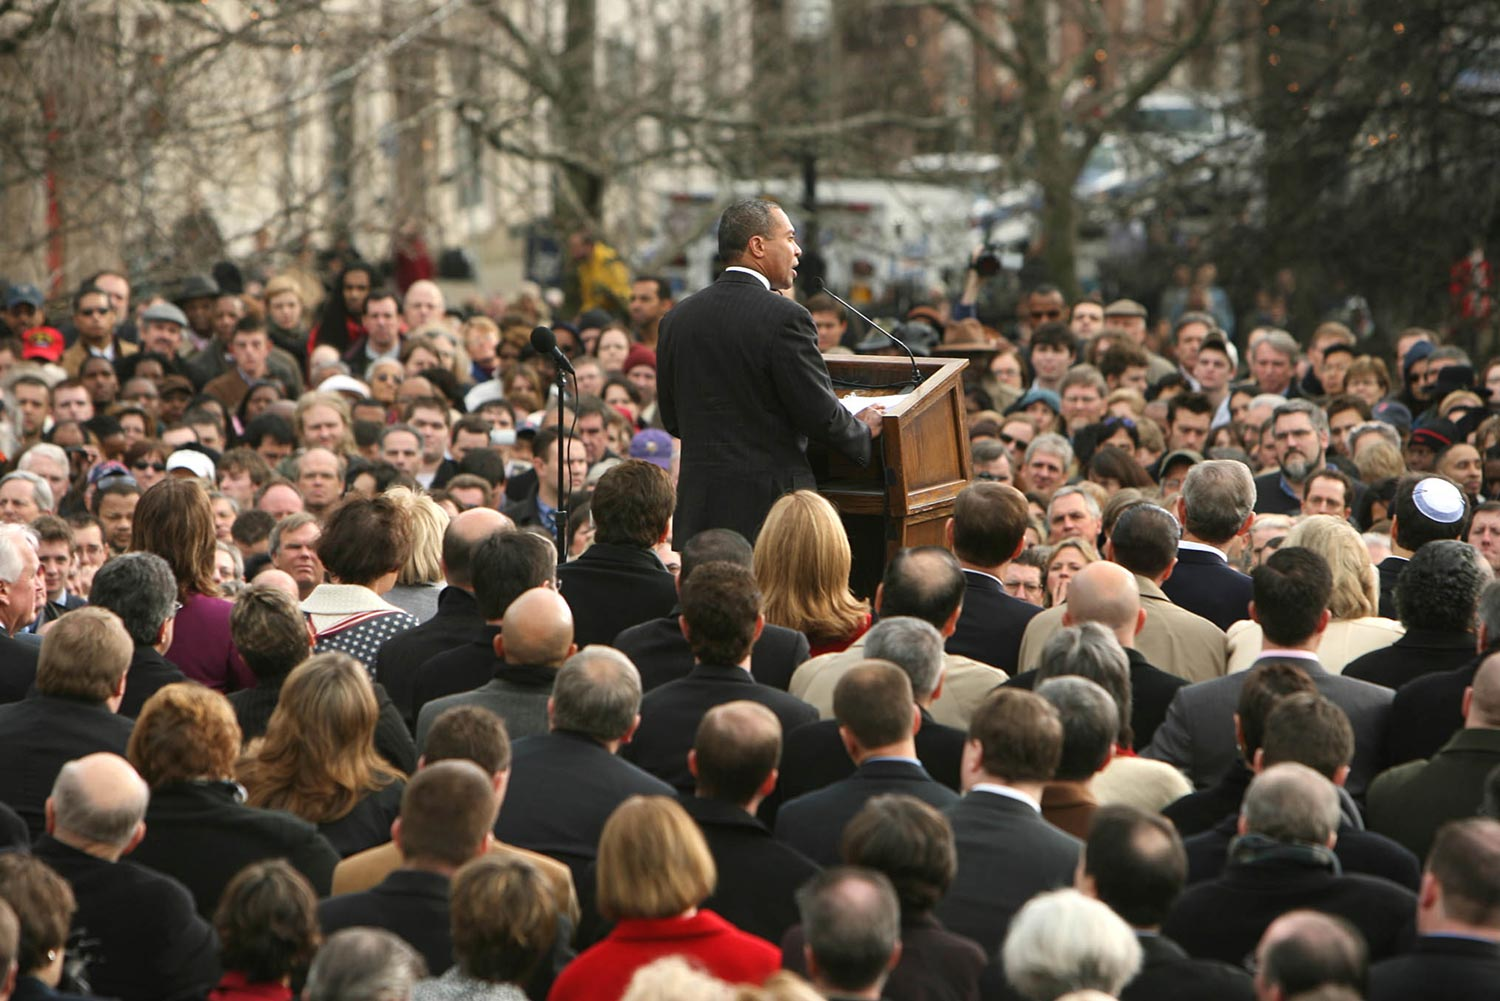 Patrick speaking at his inauguration